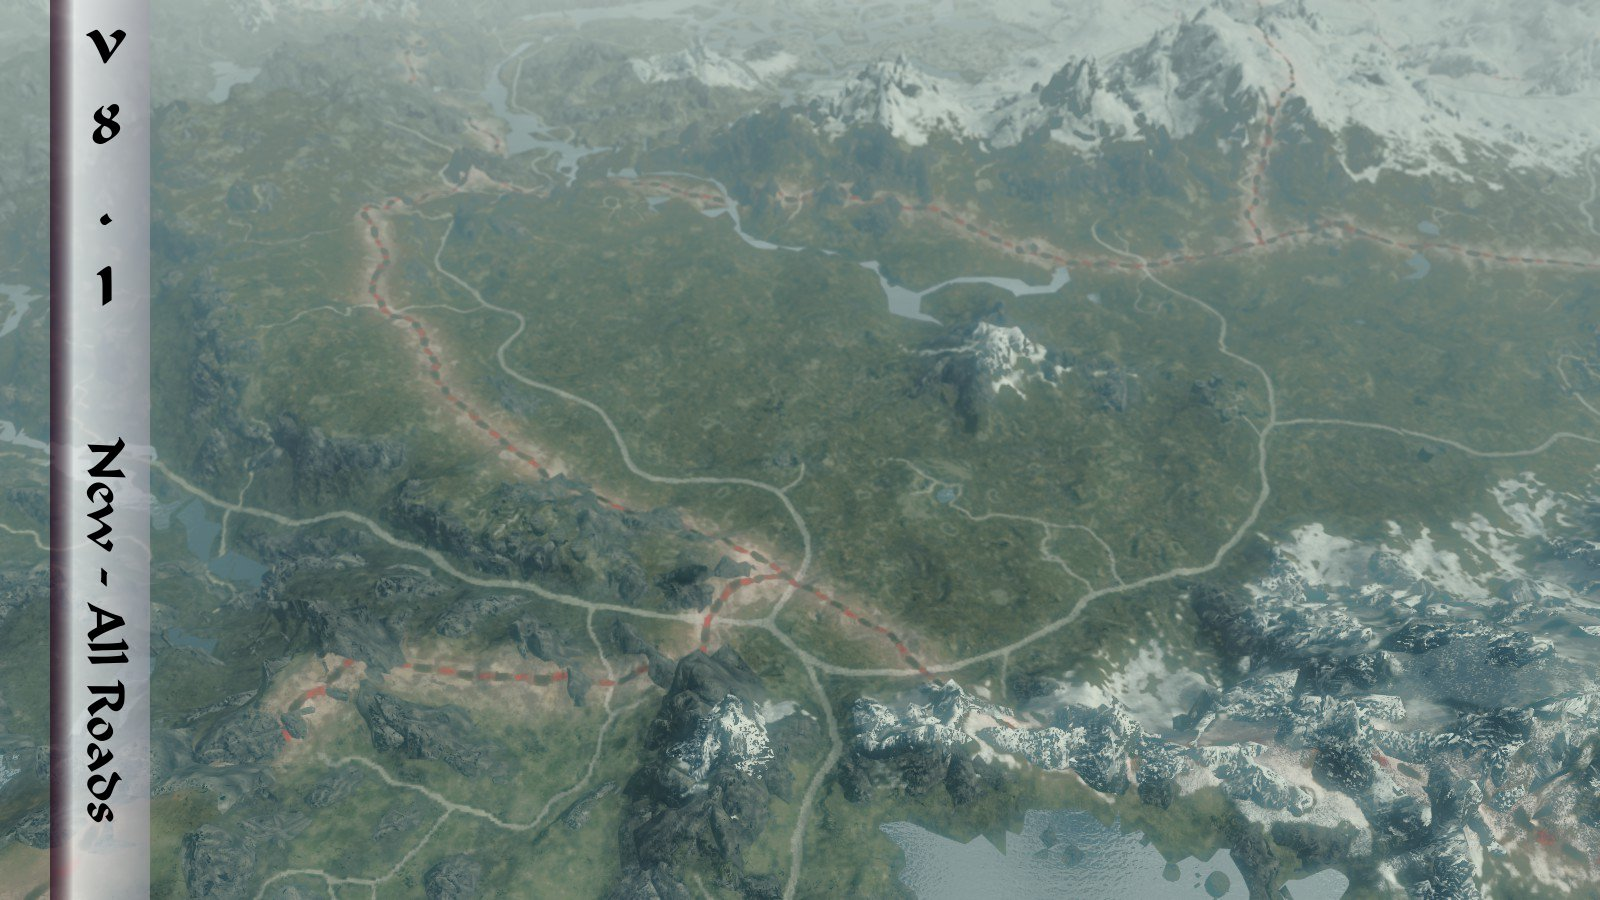 World Map - Skyrim Hold Borders